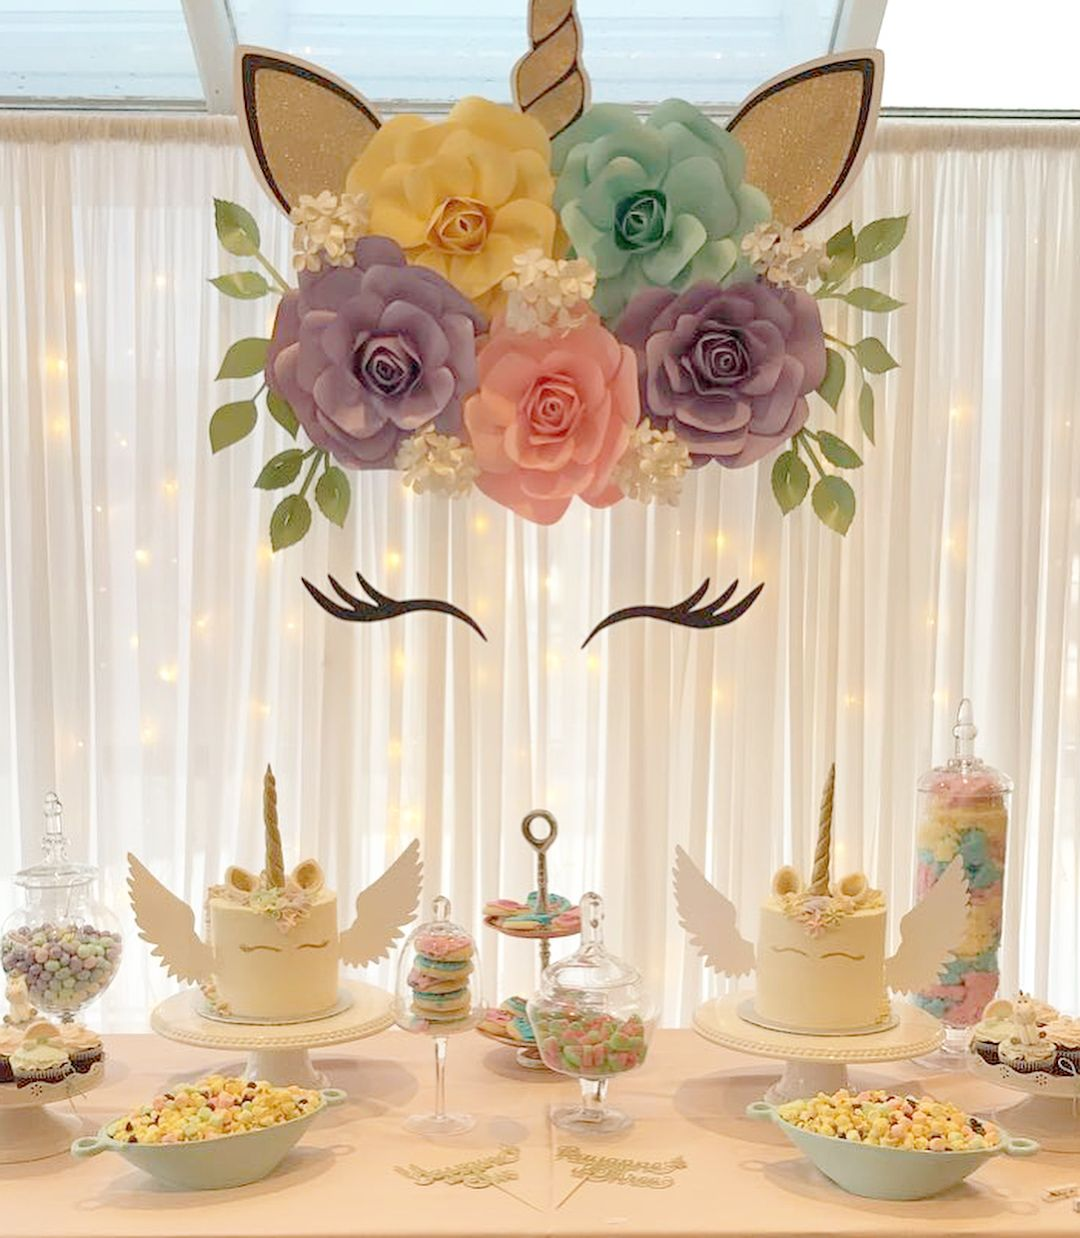 Offer Up San Diego >> Unicorn theme birthday party for 2 little princesses. I